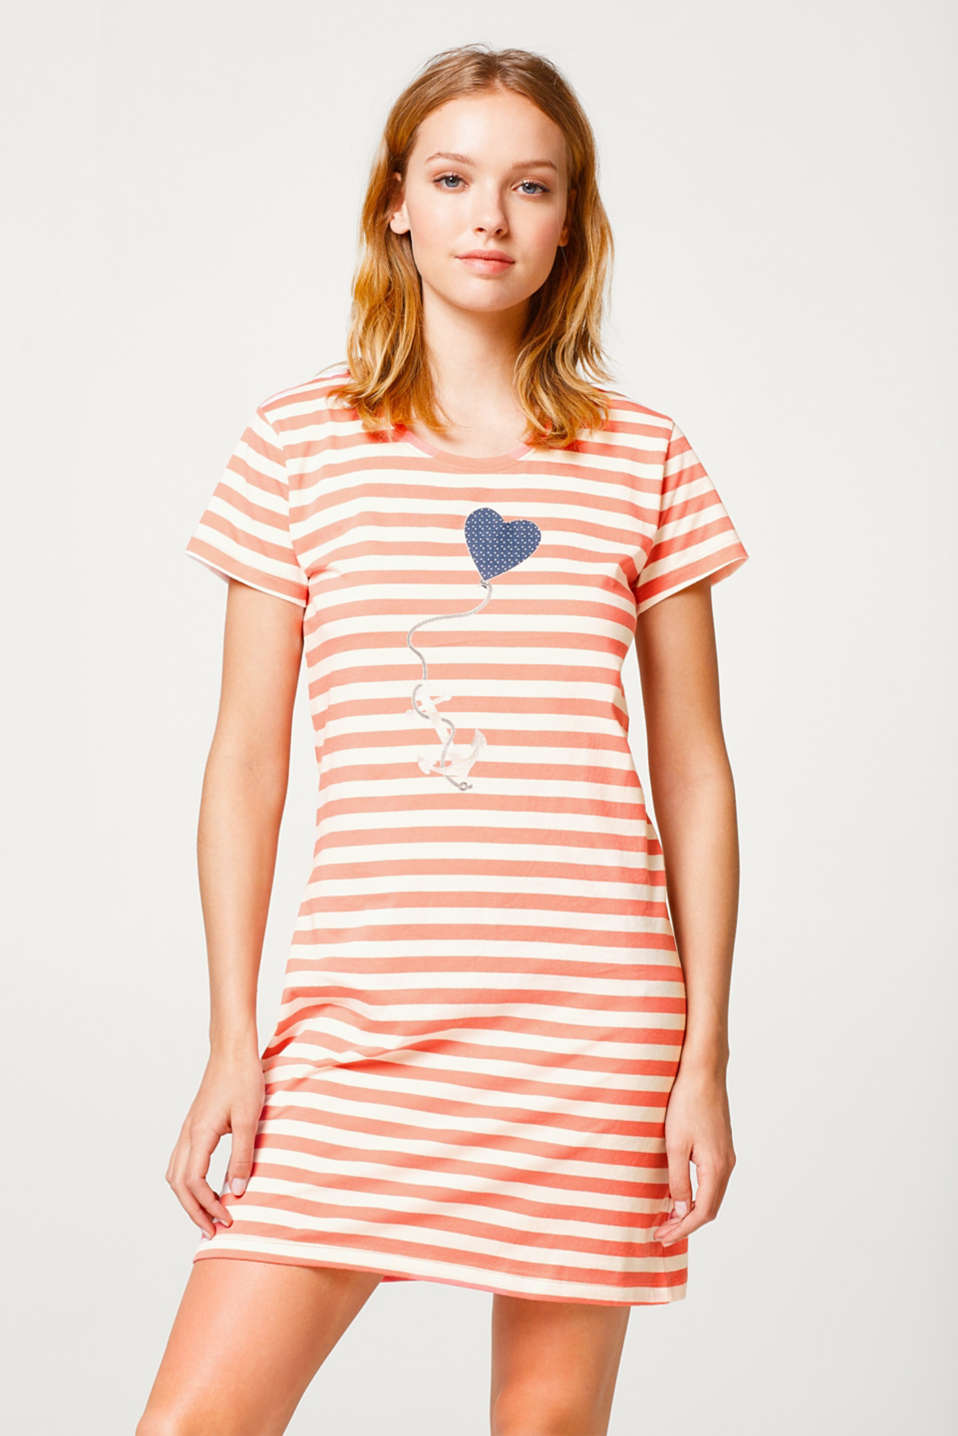 Soft jersey nightshirt with a print, 100% cotton